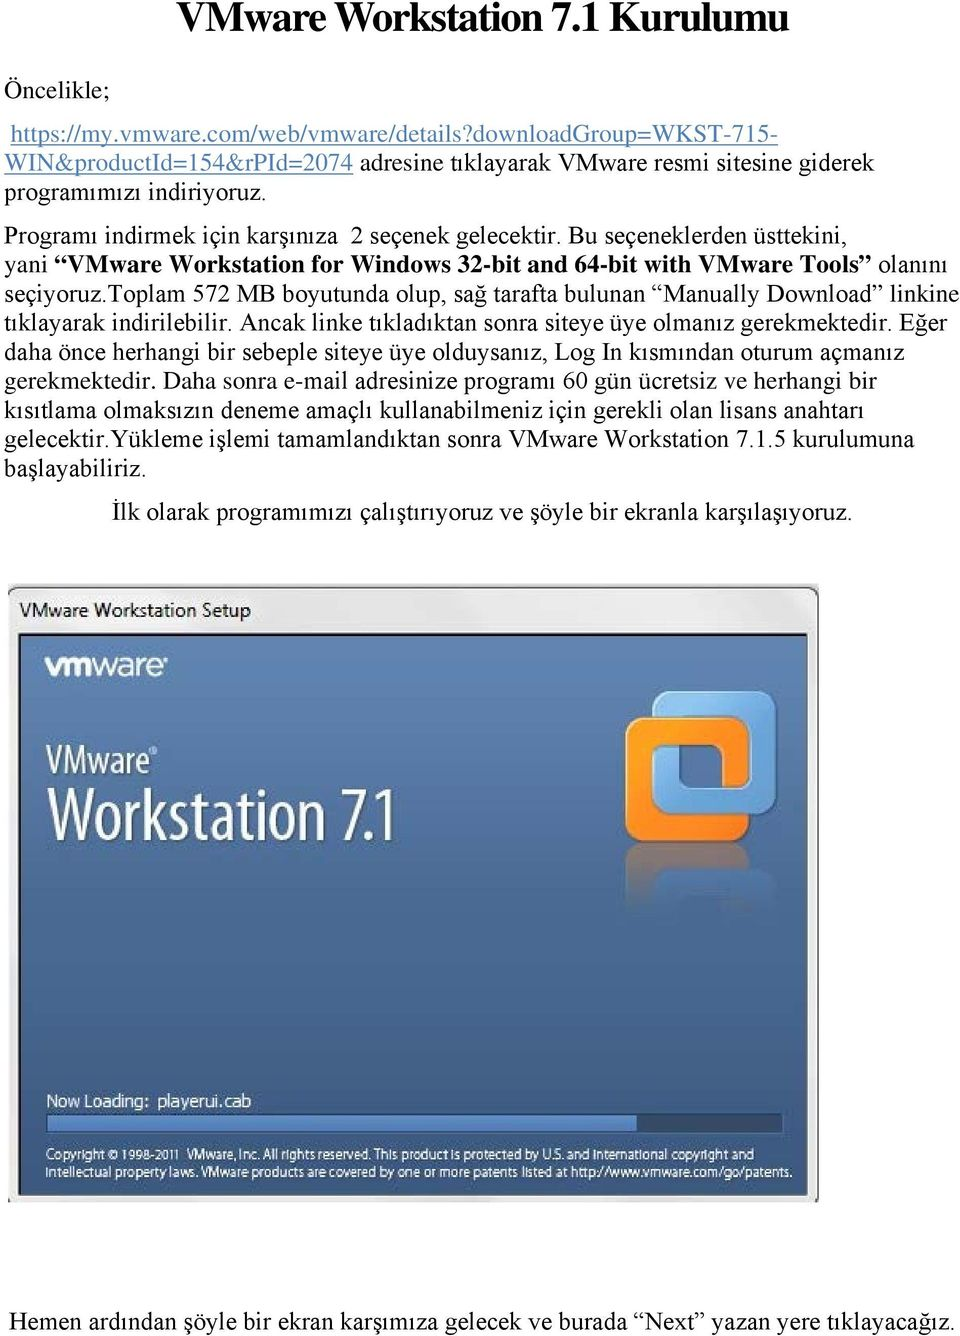 Bu seçeneklerden üsttekini, yani VMware Workstation for Windows 32-bit and 64-bit with VMware Tools olanını seçiyoruz.